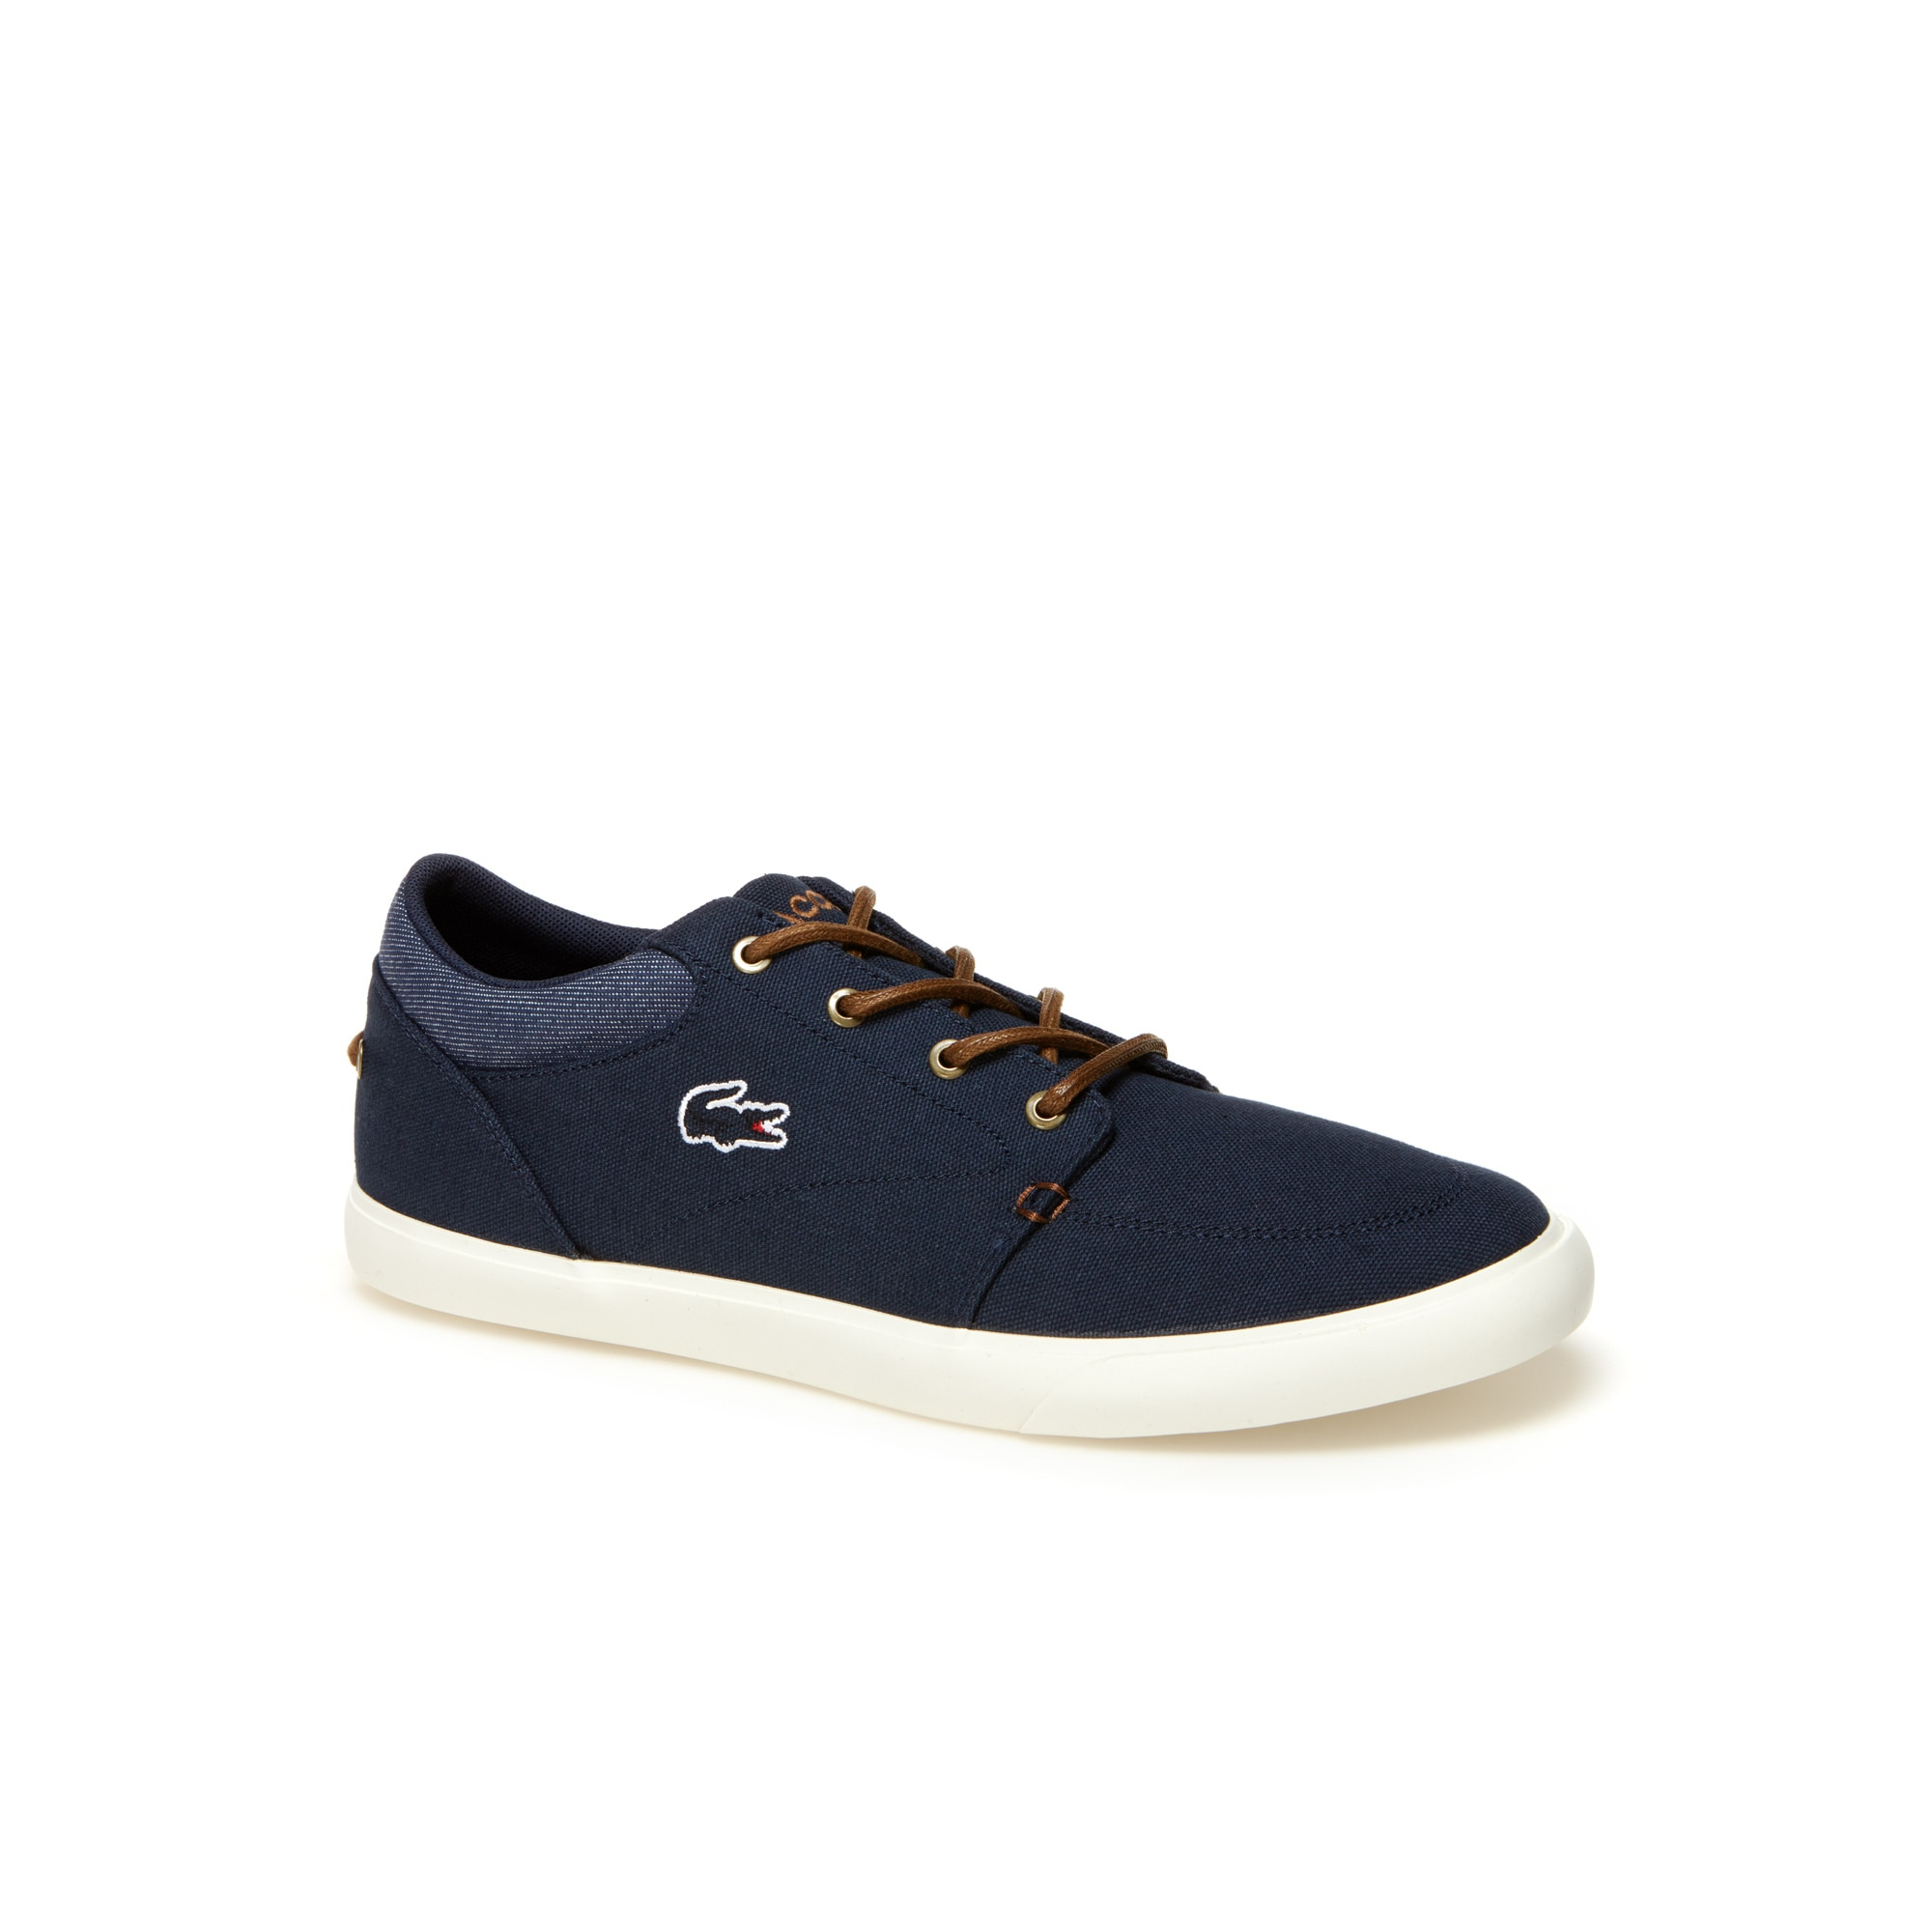 Herren-Sneakers BAYLISS VULC aus Canvas